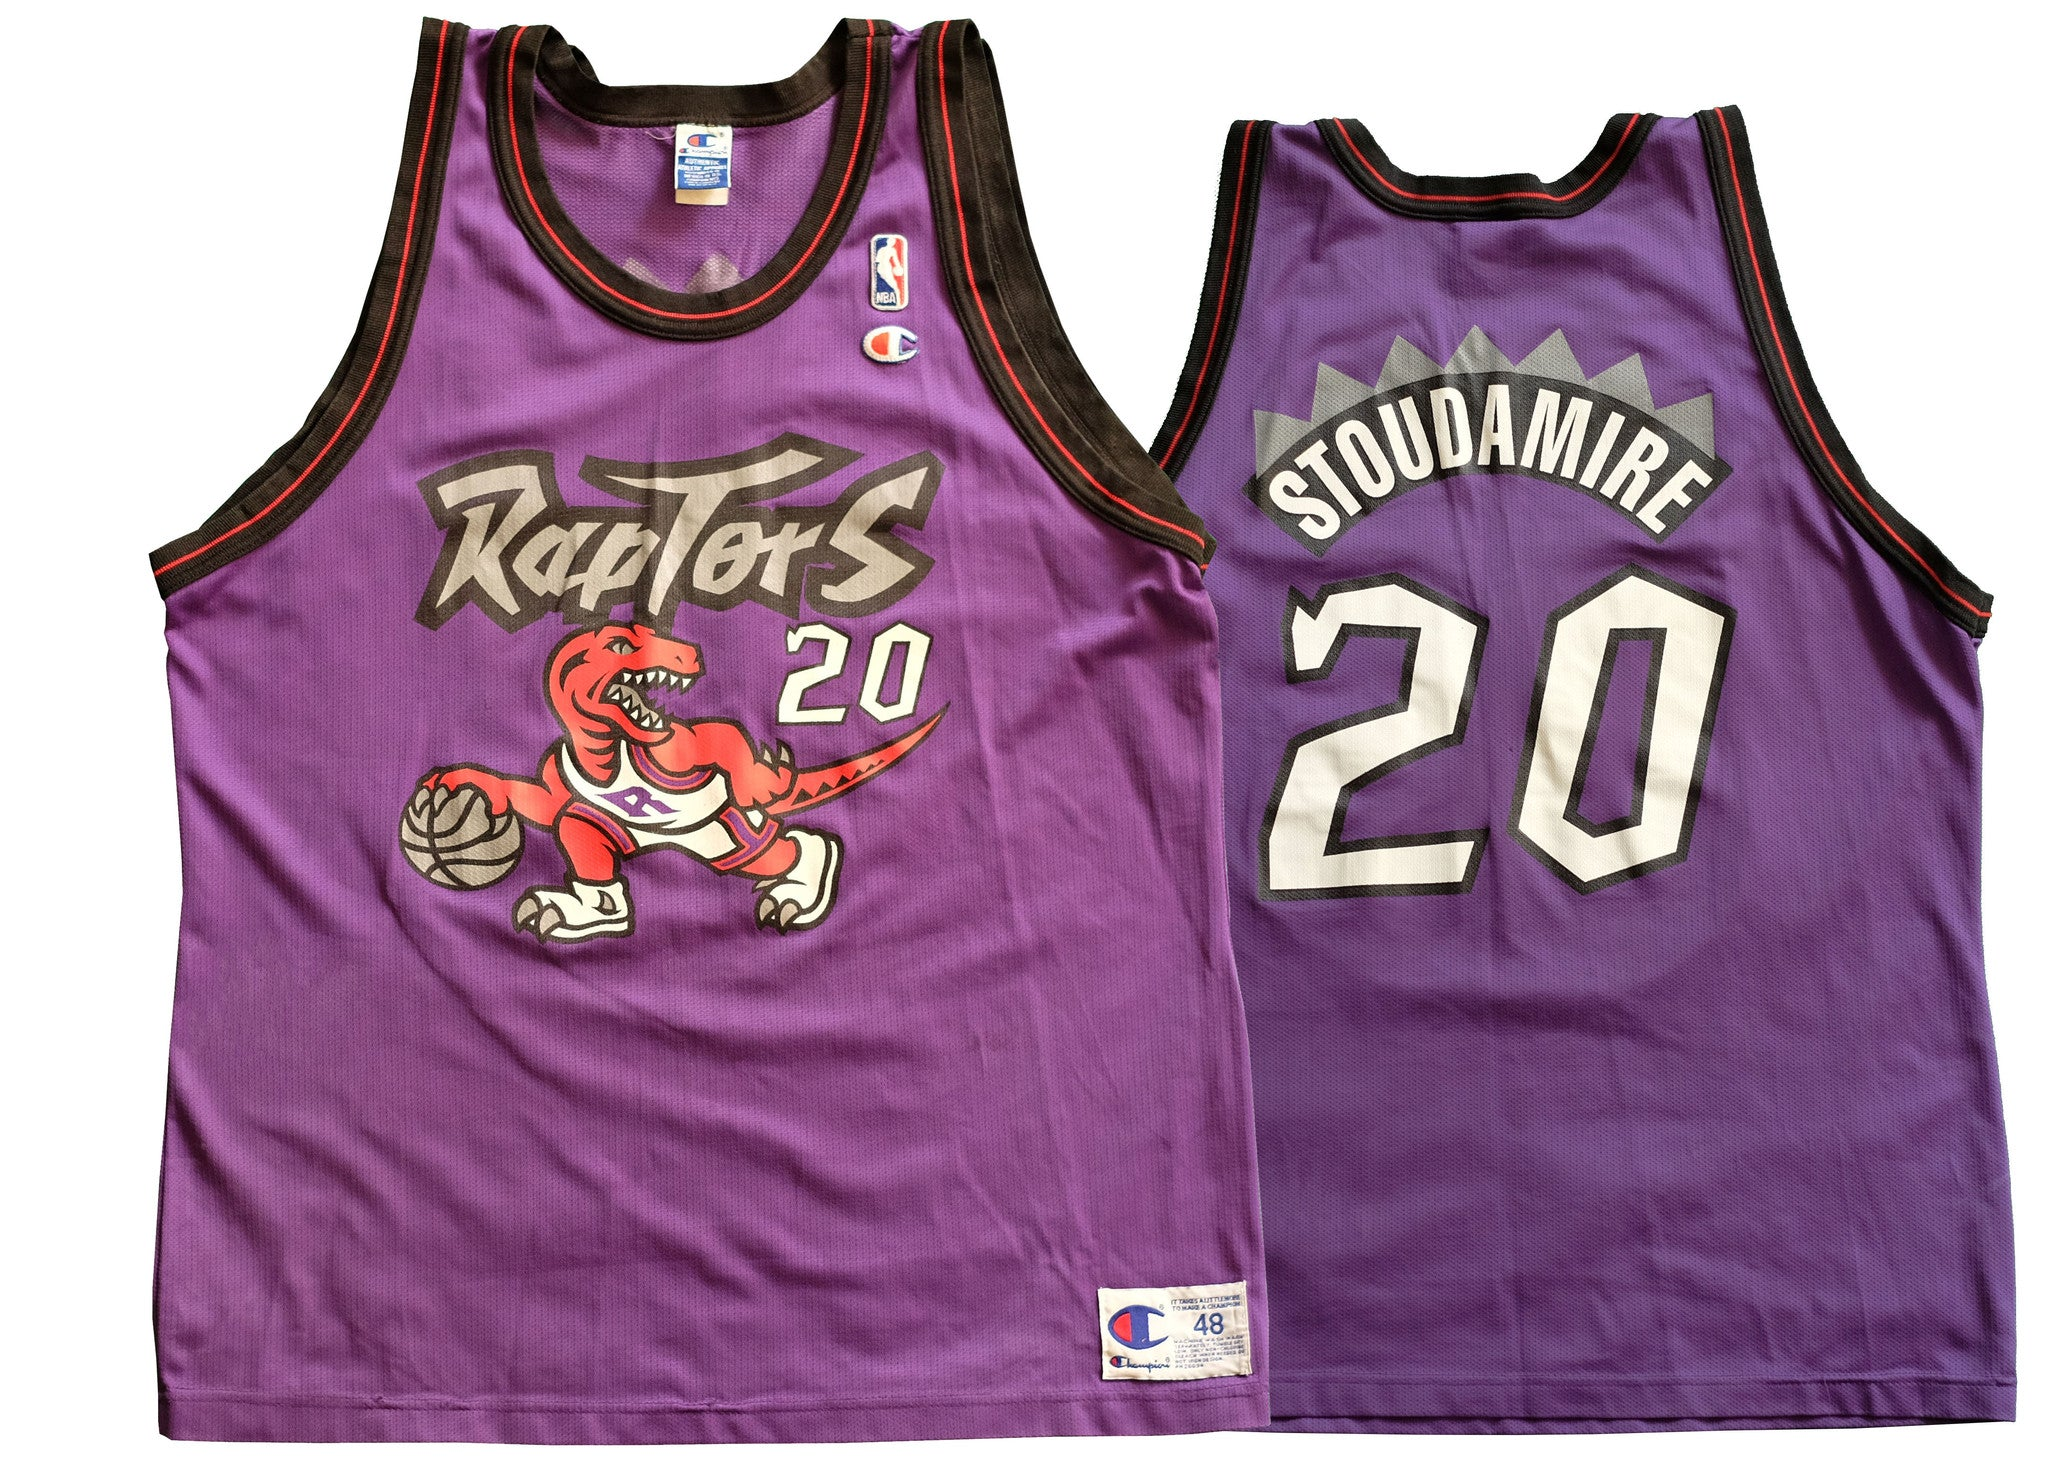 a0211ad4bb9 Toronto Raptors Champion Damon Stoudemire Jersey. Product image 1 ...